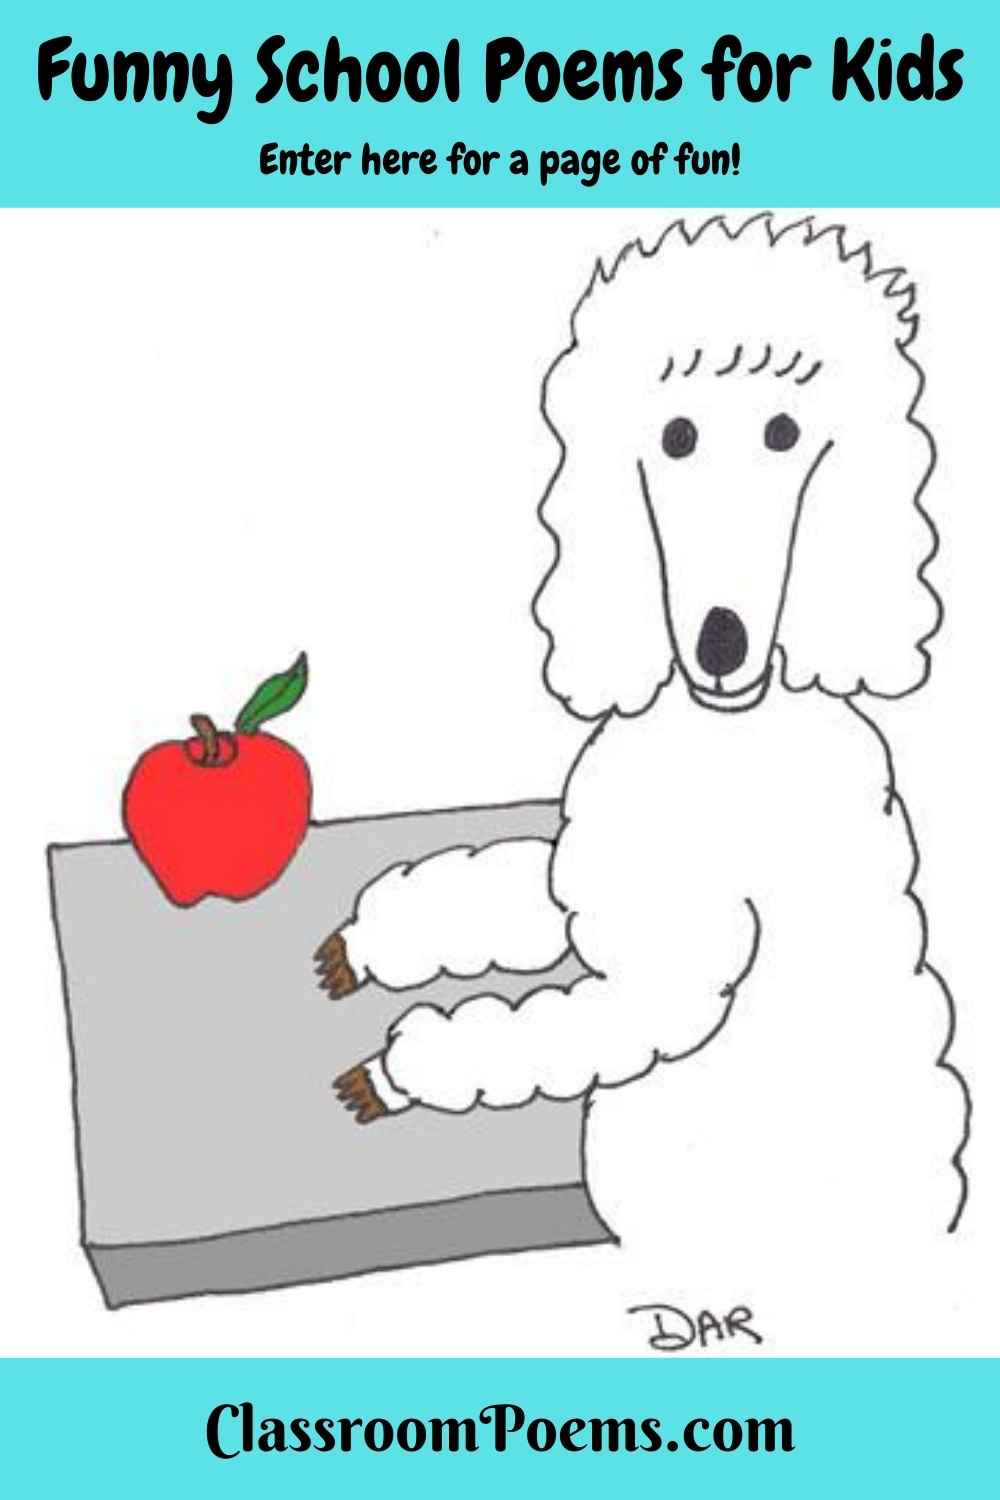 Funny school poems for kids. Poodle at school desk. ClassroomPoems.com